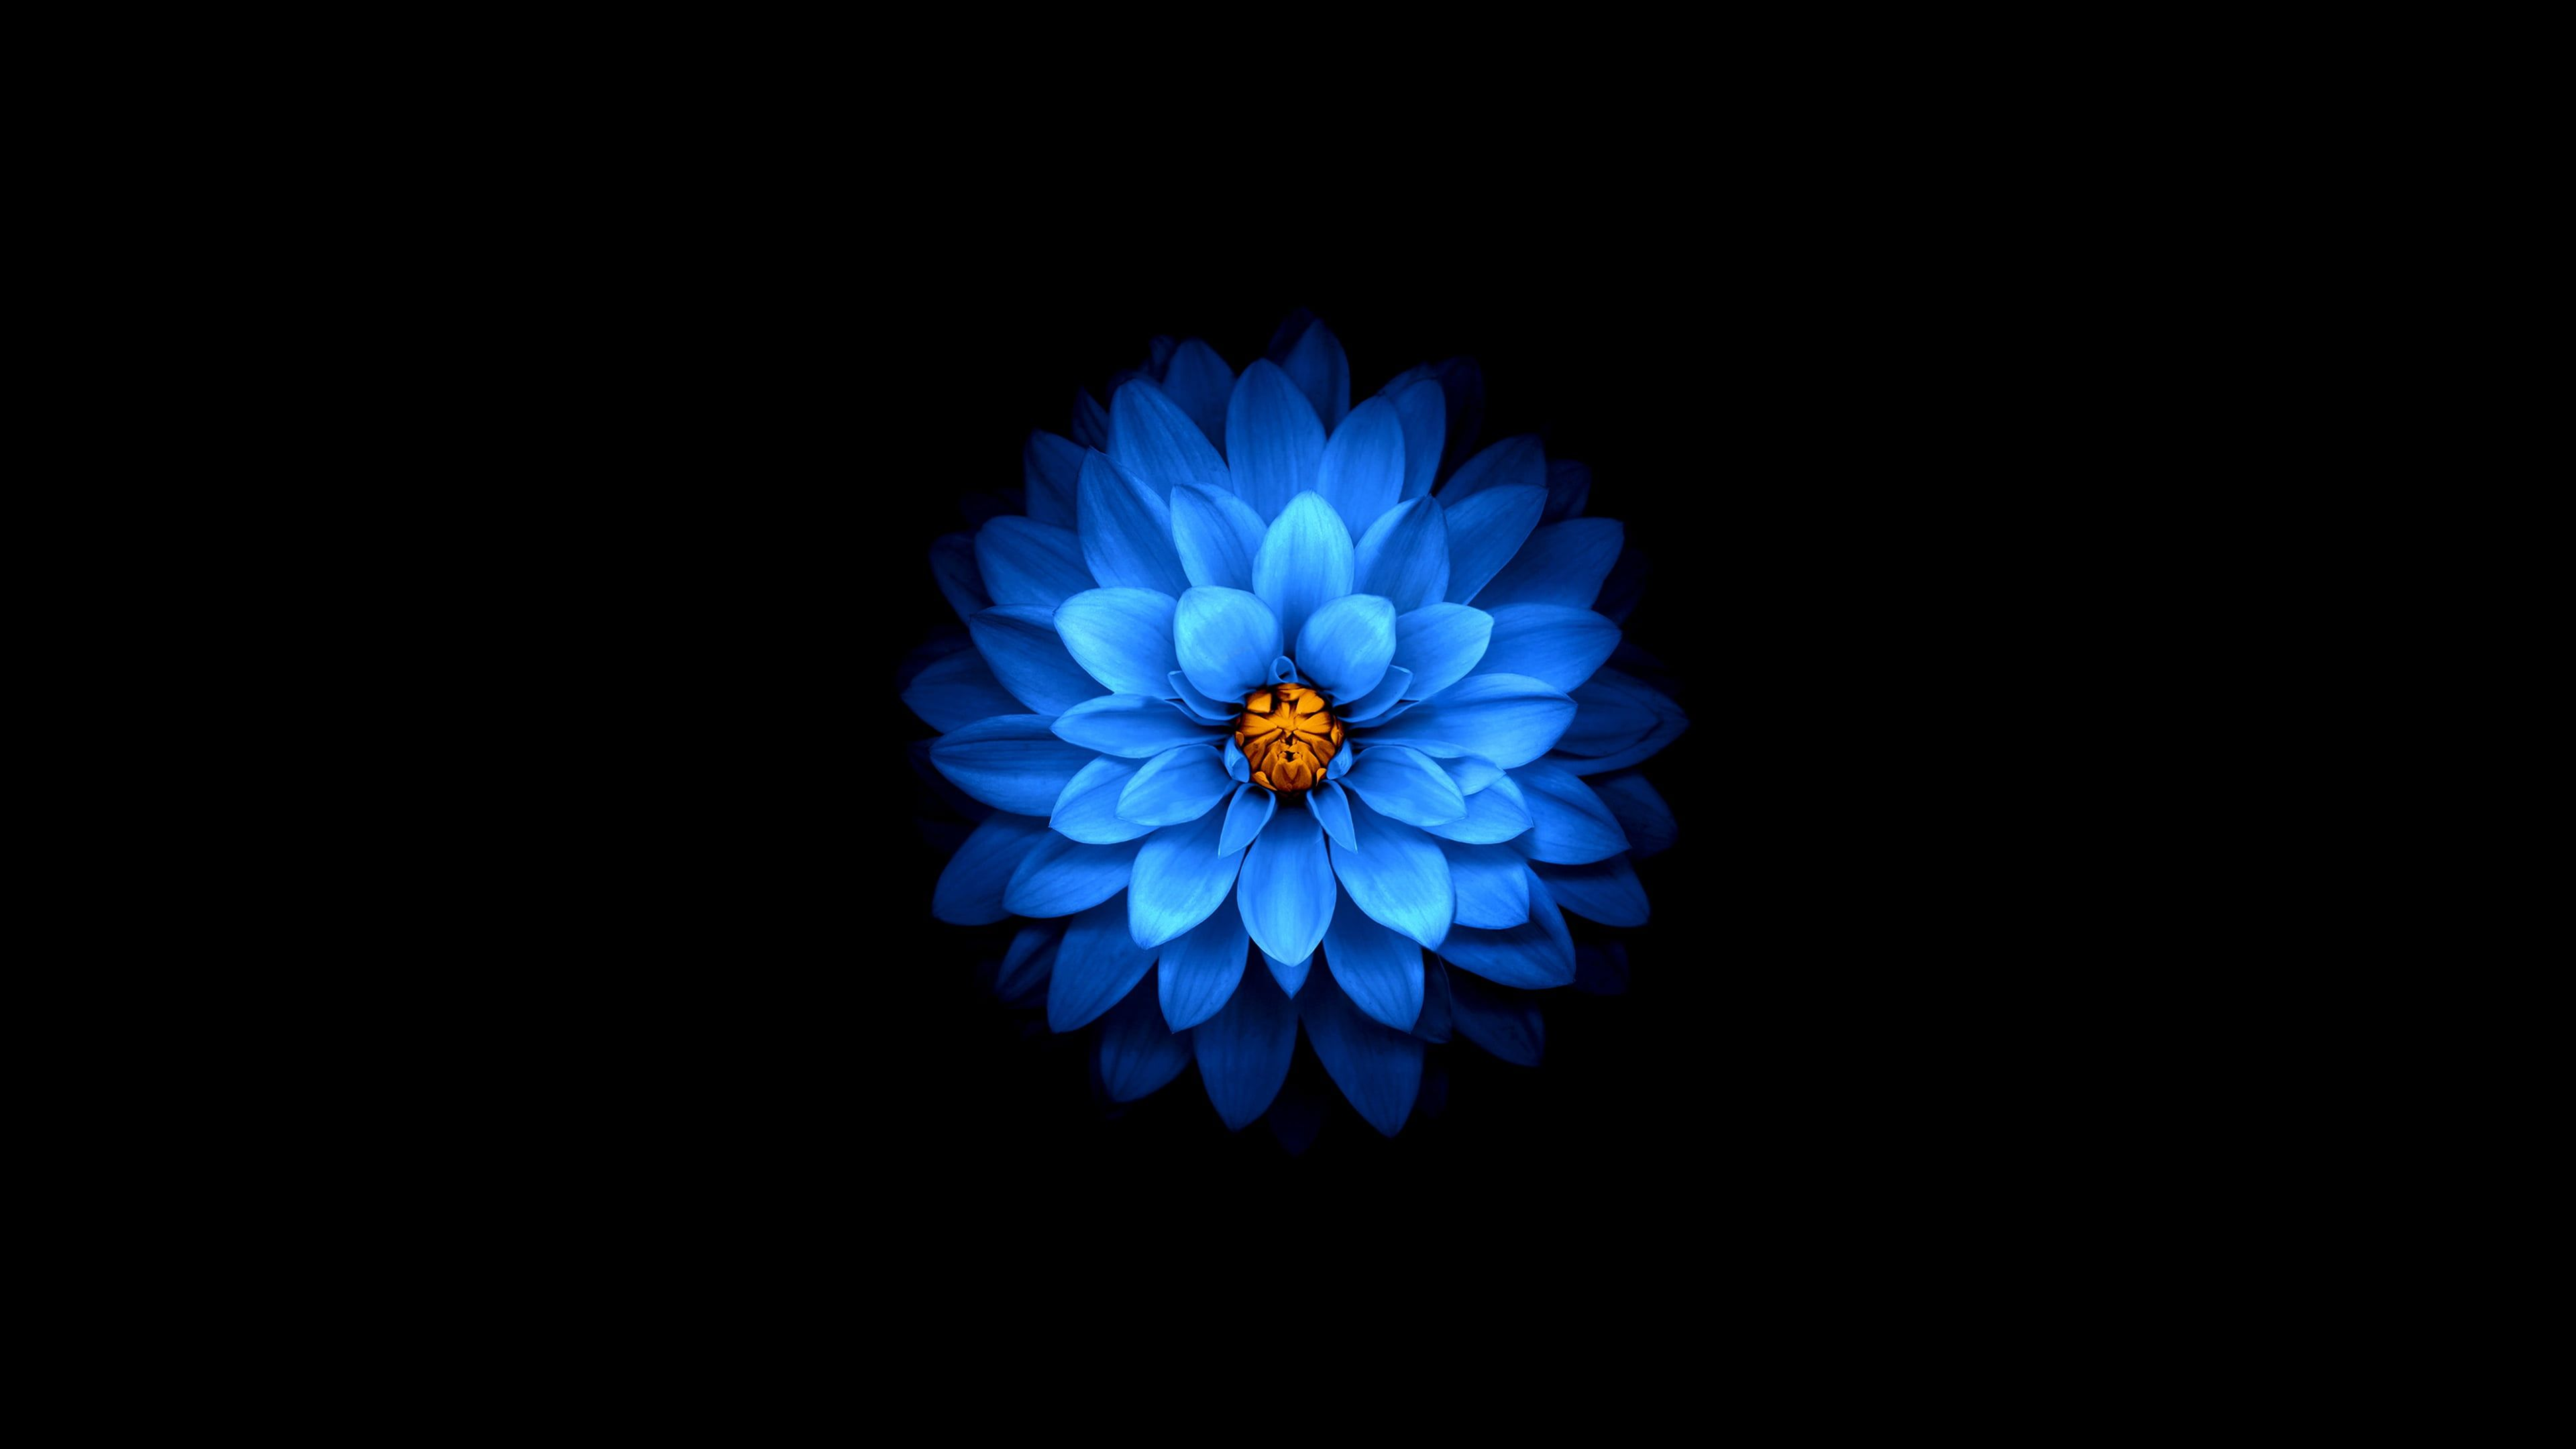 Blue Dahlia Flower Wallpaper Flower Background Wallpaper Petals 4k Wallpaper Hdwallpaper In 2020 Blue Flower Wallpaper Android Wallpaper Flowers Apple Flowers